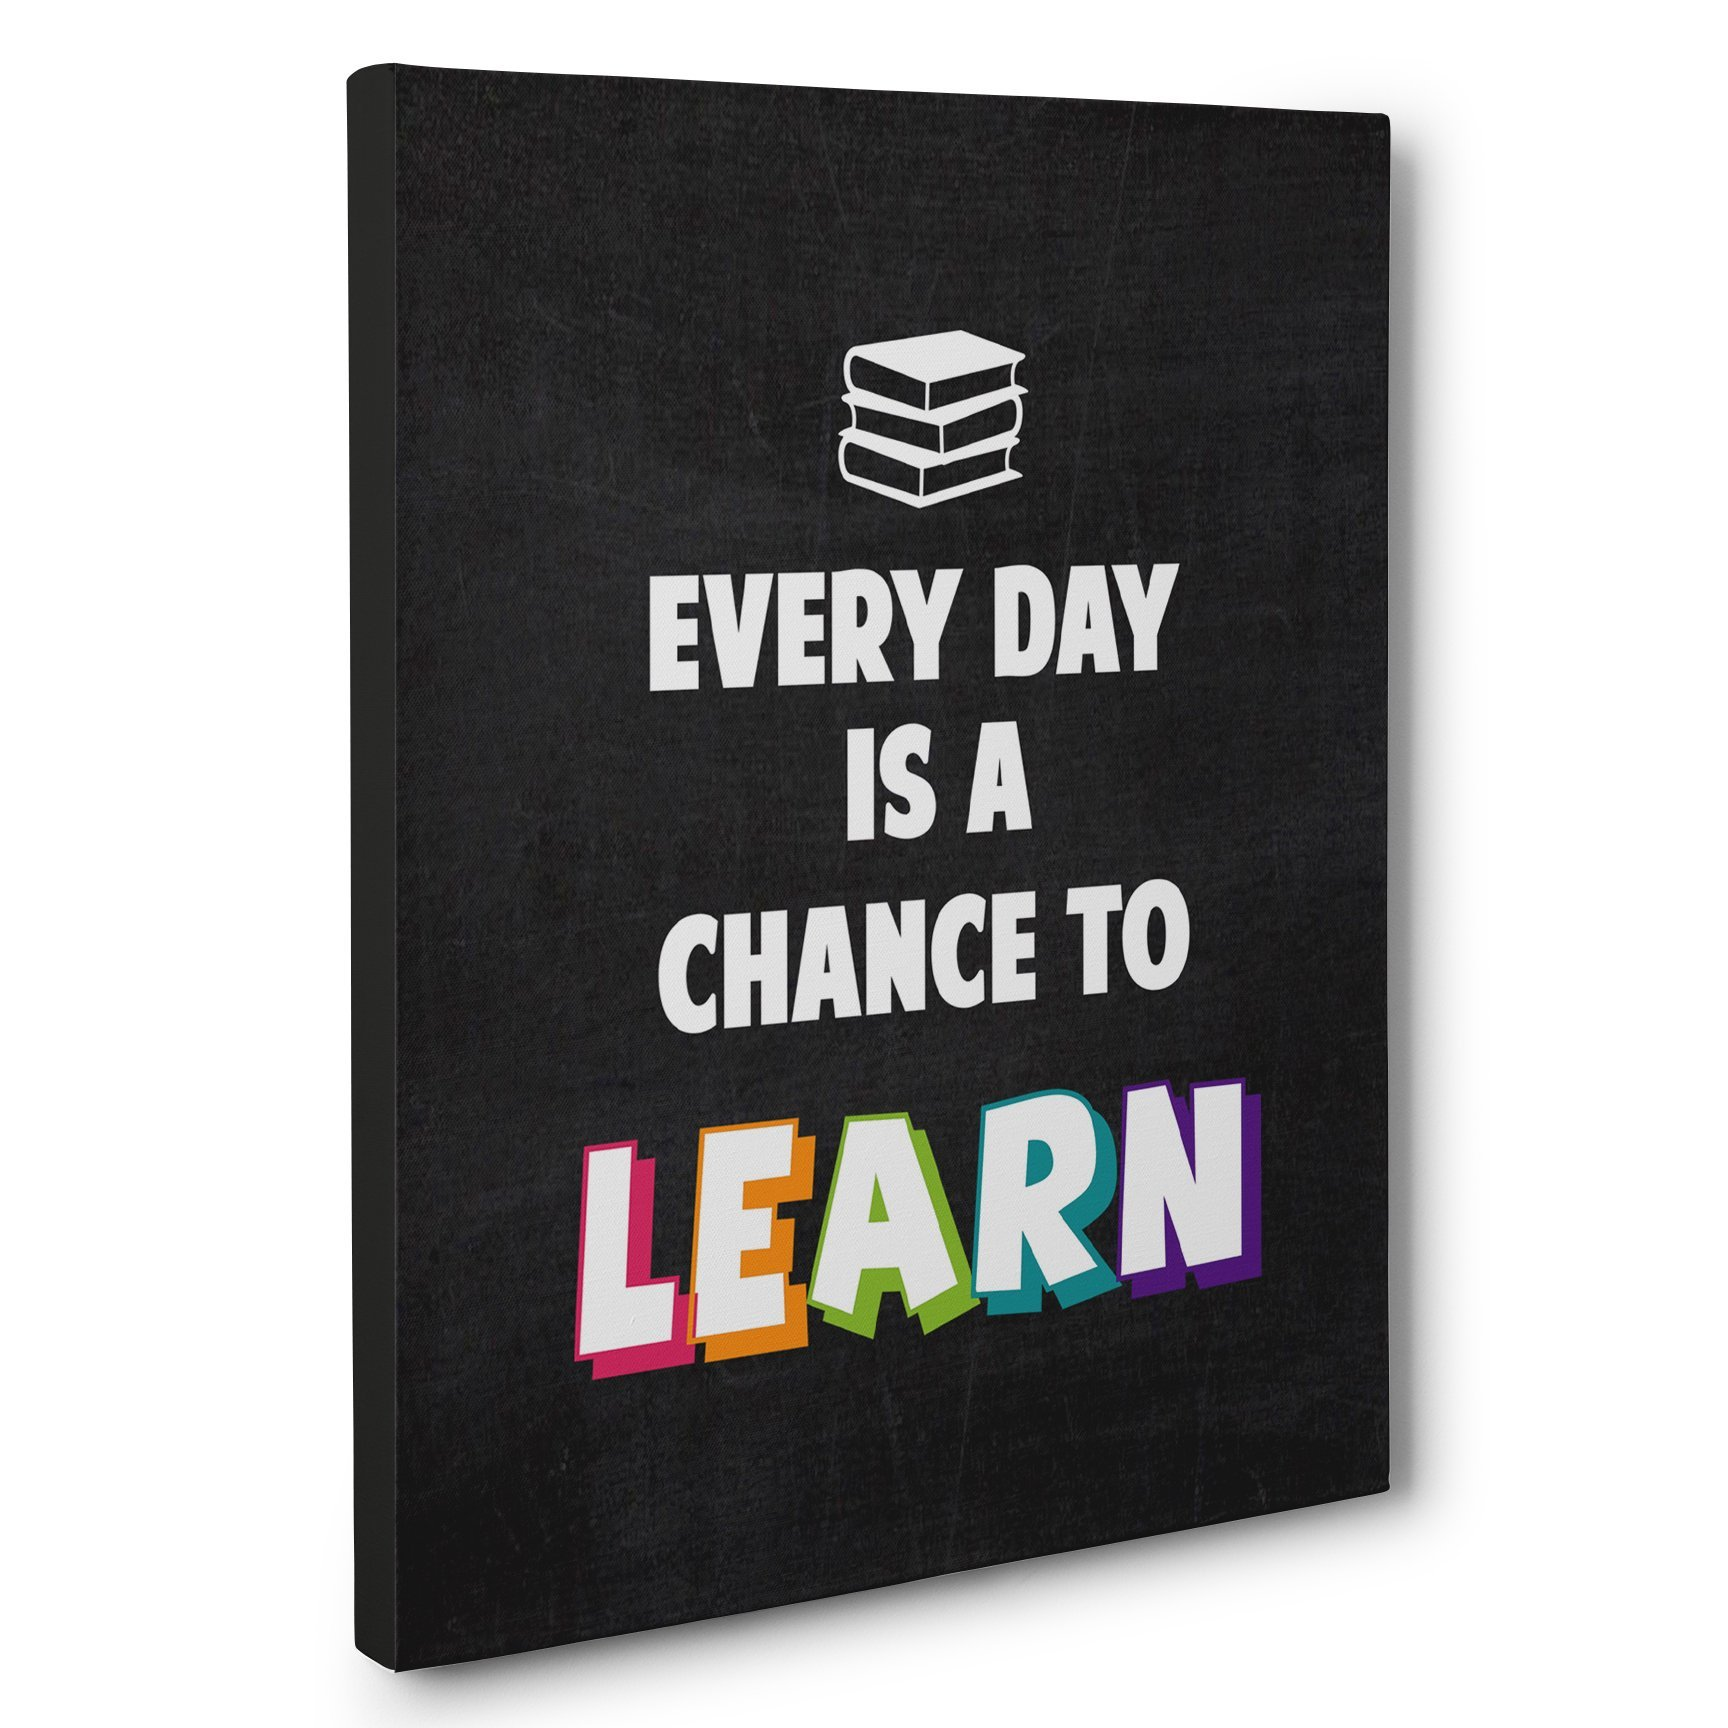 Everyday Is Chance To Learn Classroom Canvas Wall Art by Paper Blast